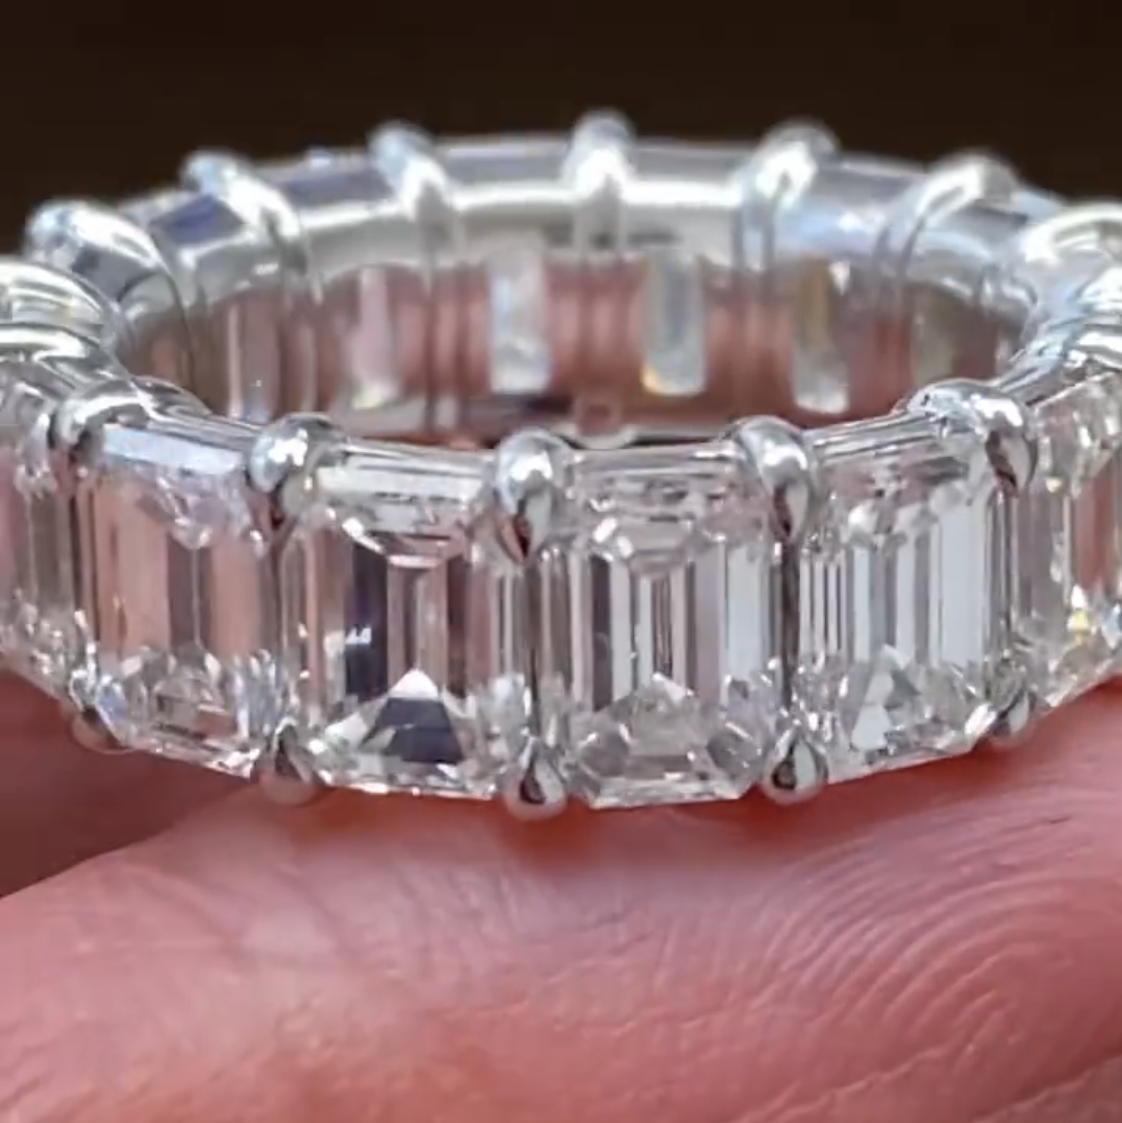 Eternal 925 Sterling silver Pave Emerald cut Created Moissanite Rings for Women ENGAGEMENT WEDDING Diamond BAND Ring Jewelry